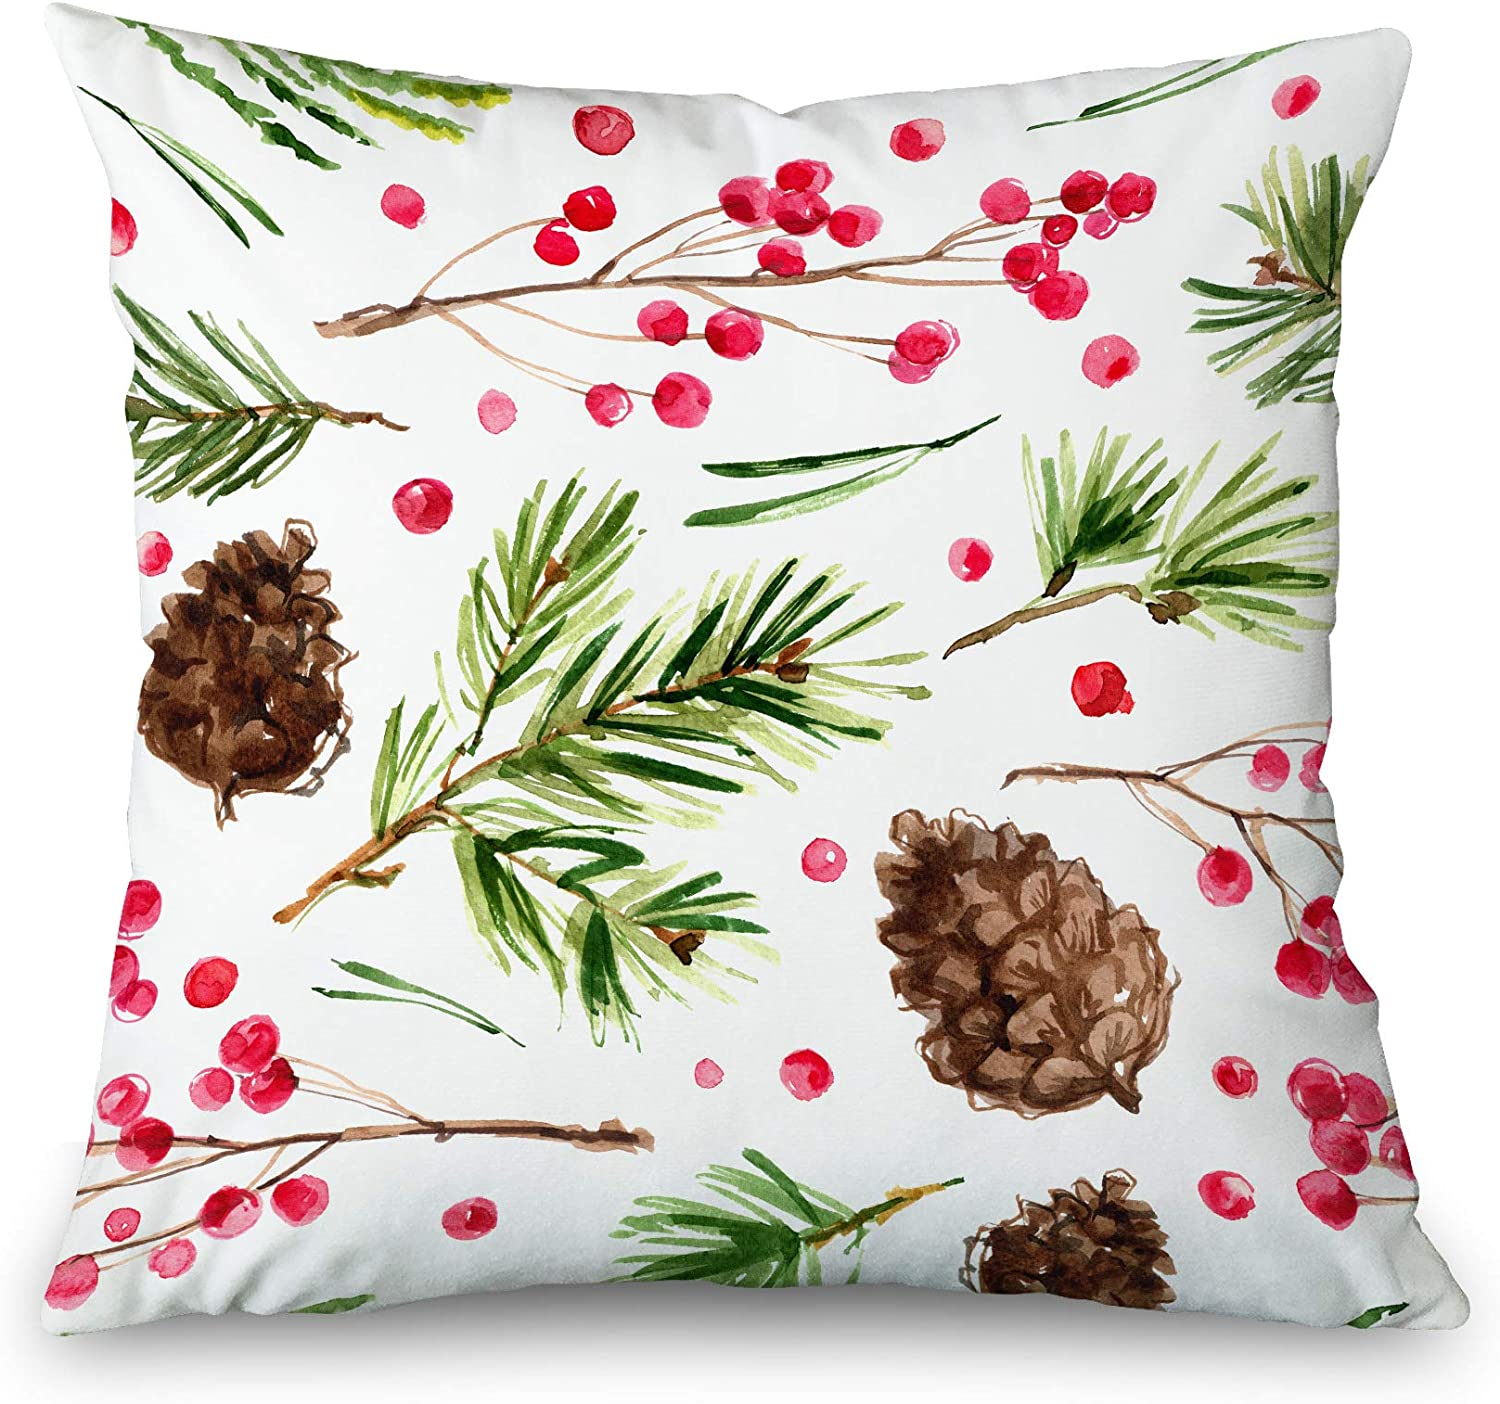 Toobaso Dedication Inexpensive Decorative Throw Pillow Cover 20x20 Square Chris Pattern